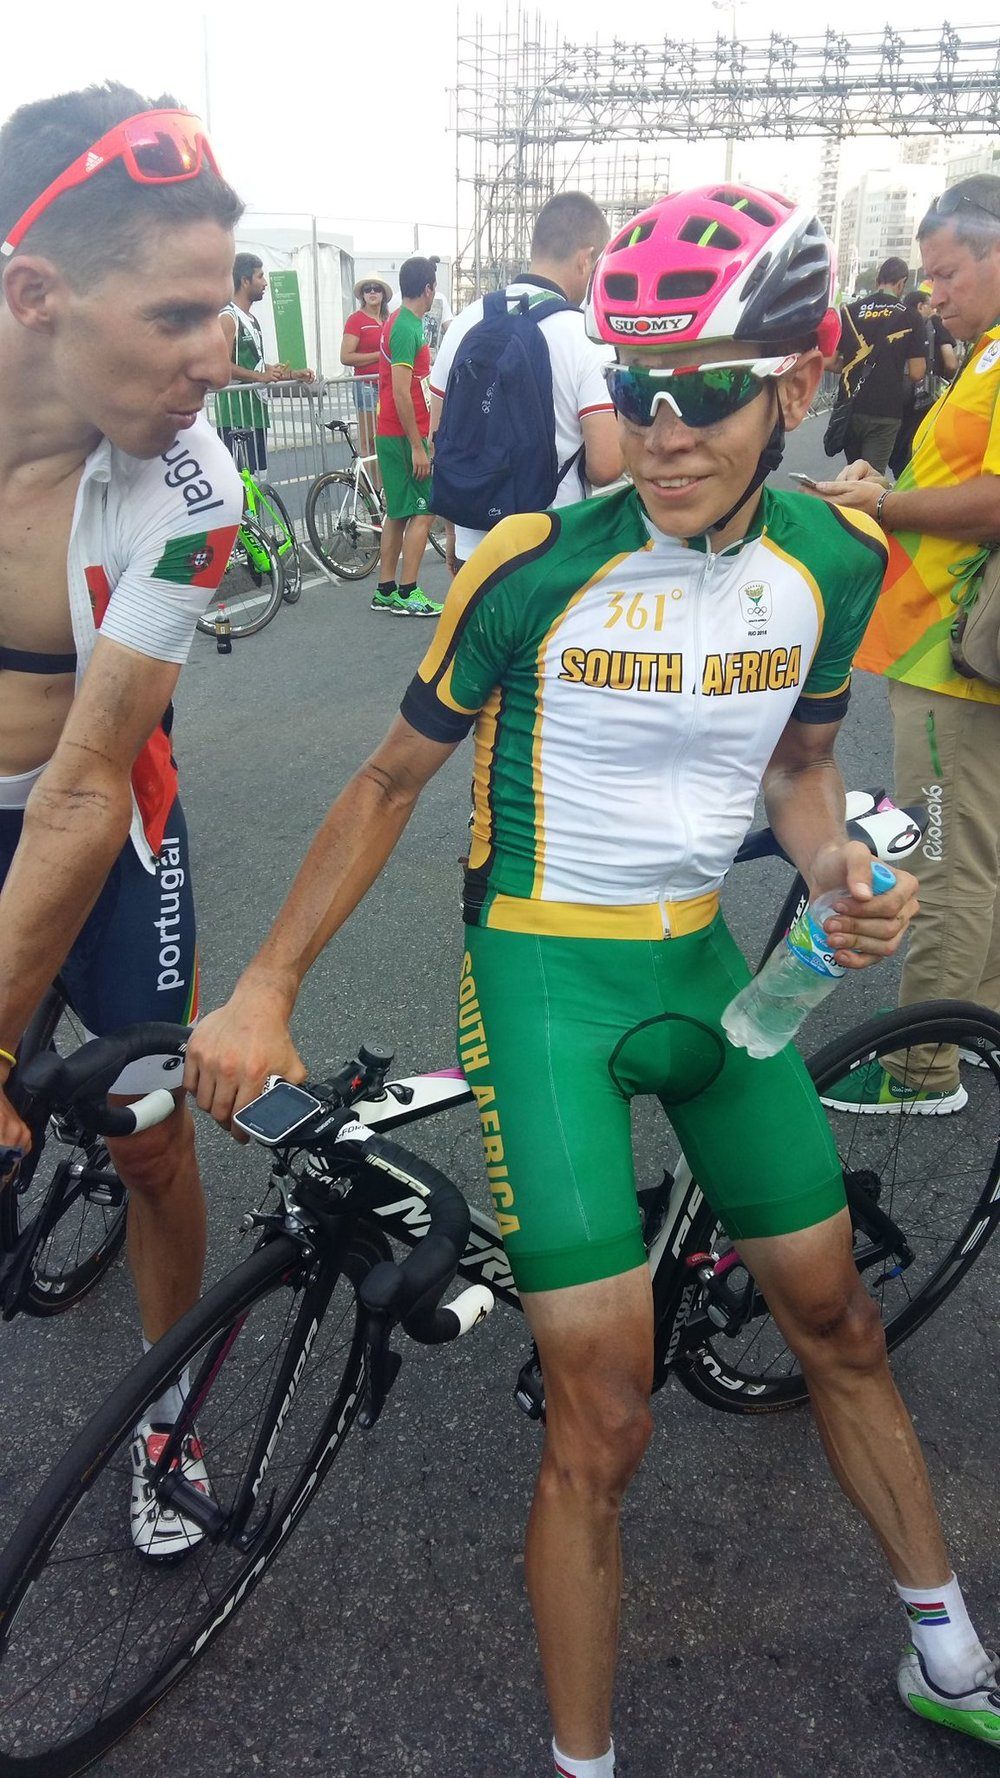 Louis Meintjes finished in 7th place in the Road Race at the 2016 Olympic Games in Rio de Janeiro, Brazil, on Saturday 6 August. Photo: Douglas Ryder (Twitter Post)